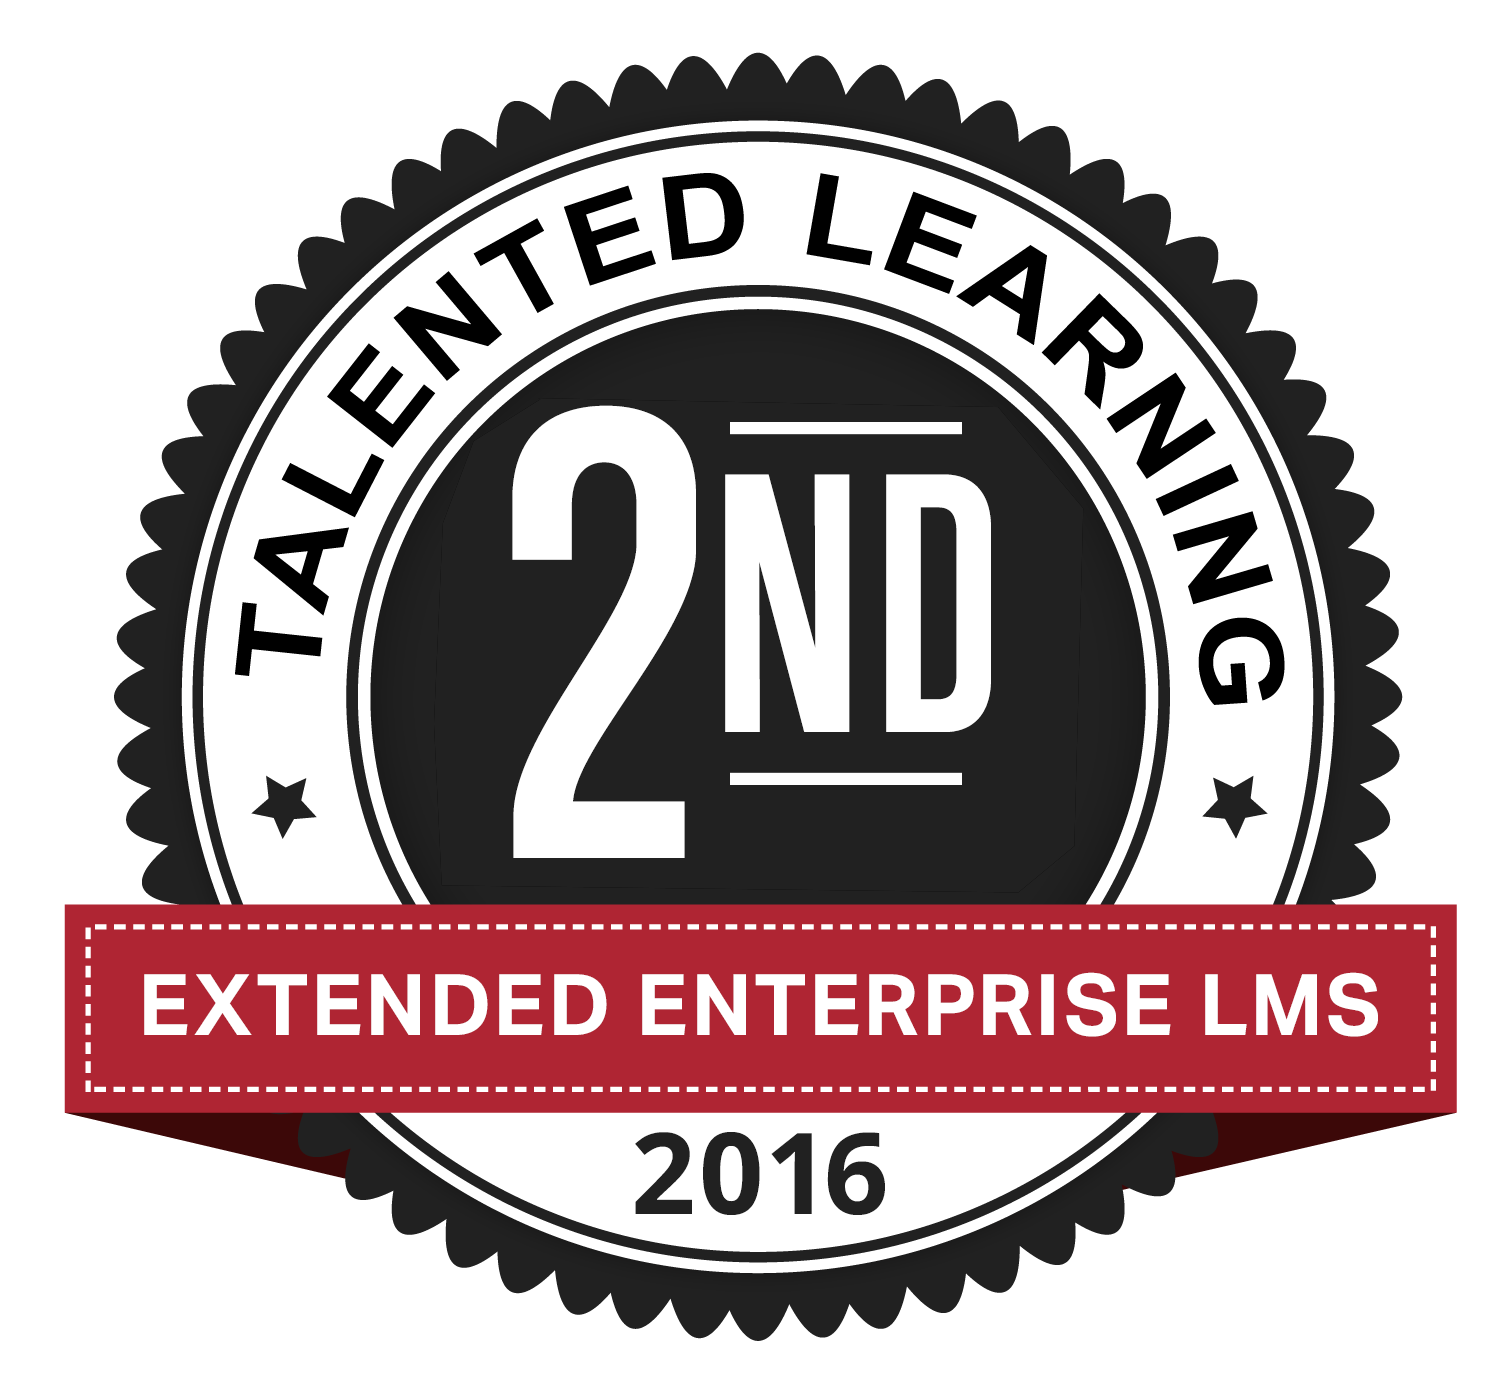 Talented Learning Extended Enterprise LMS